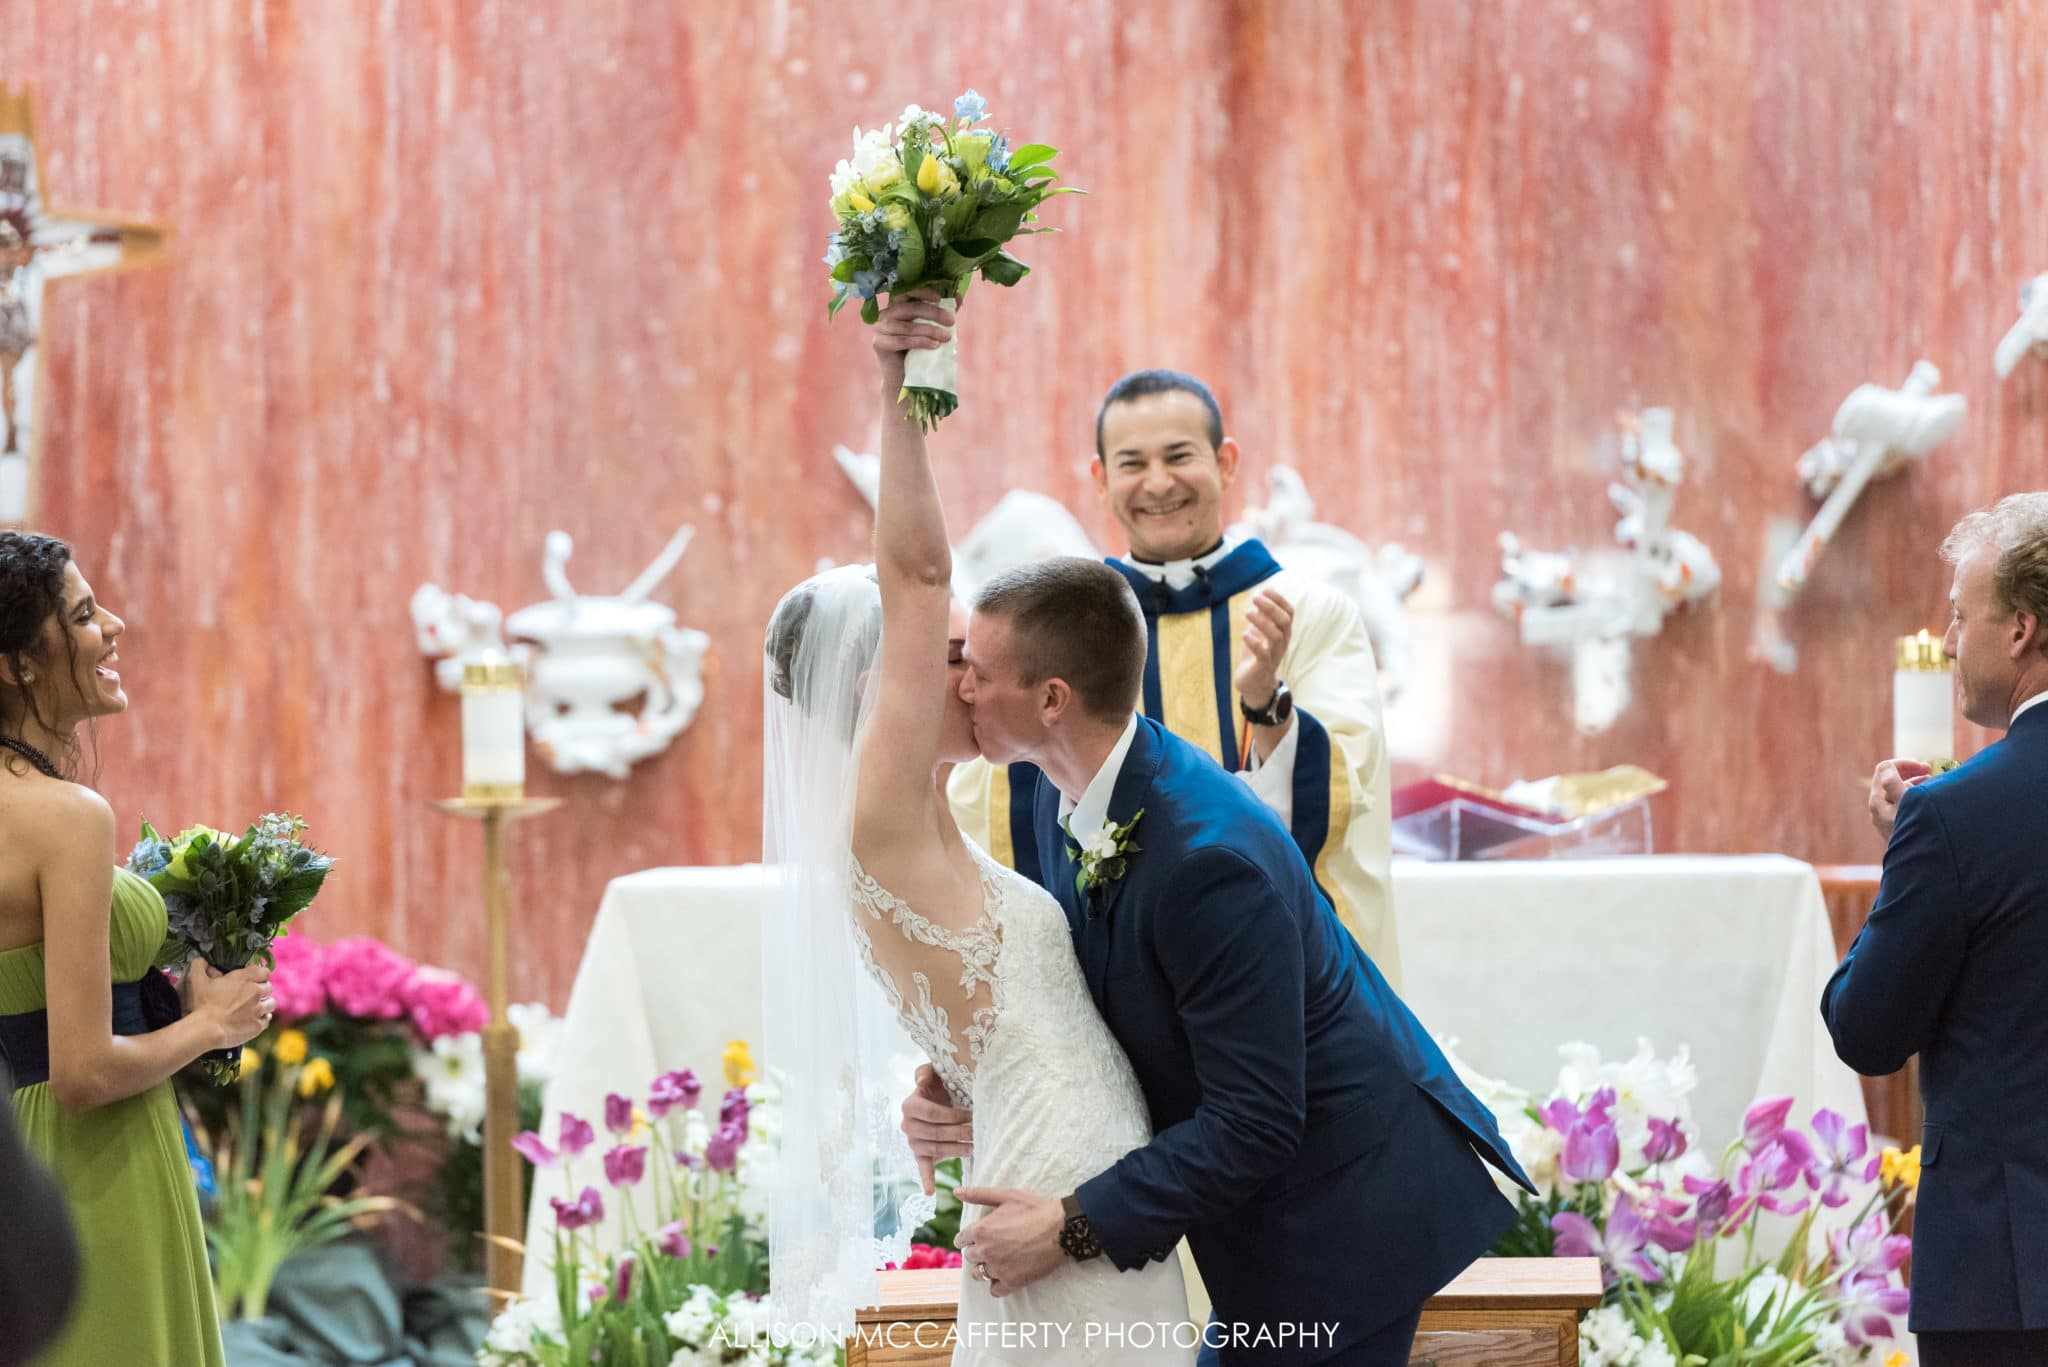 First kiss in church after wedding